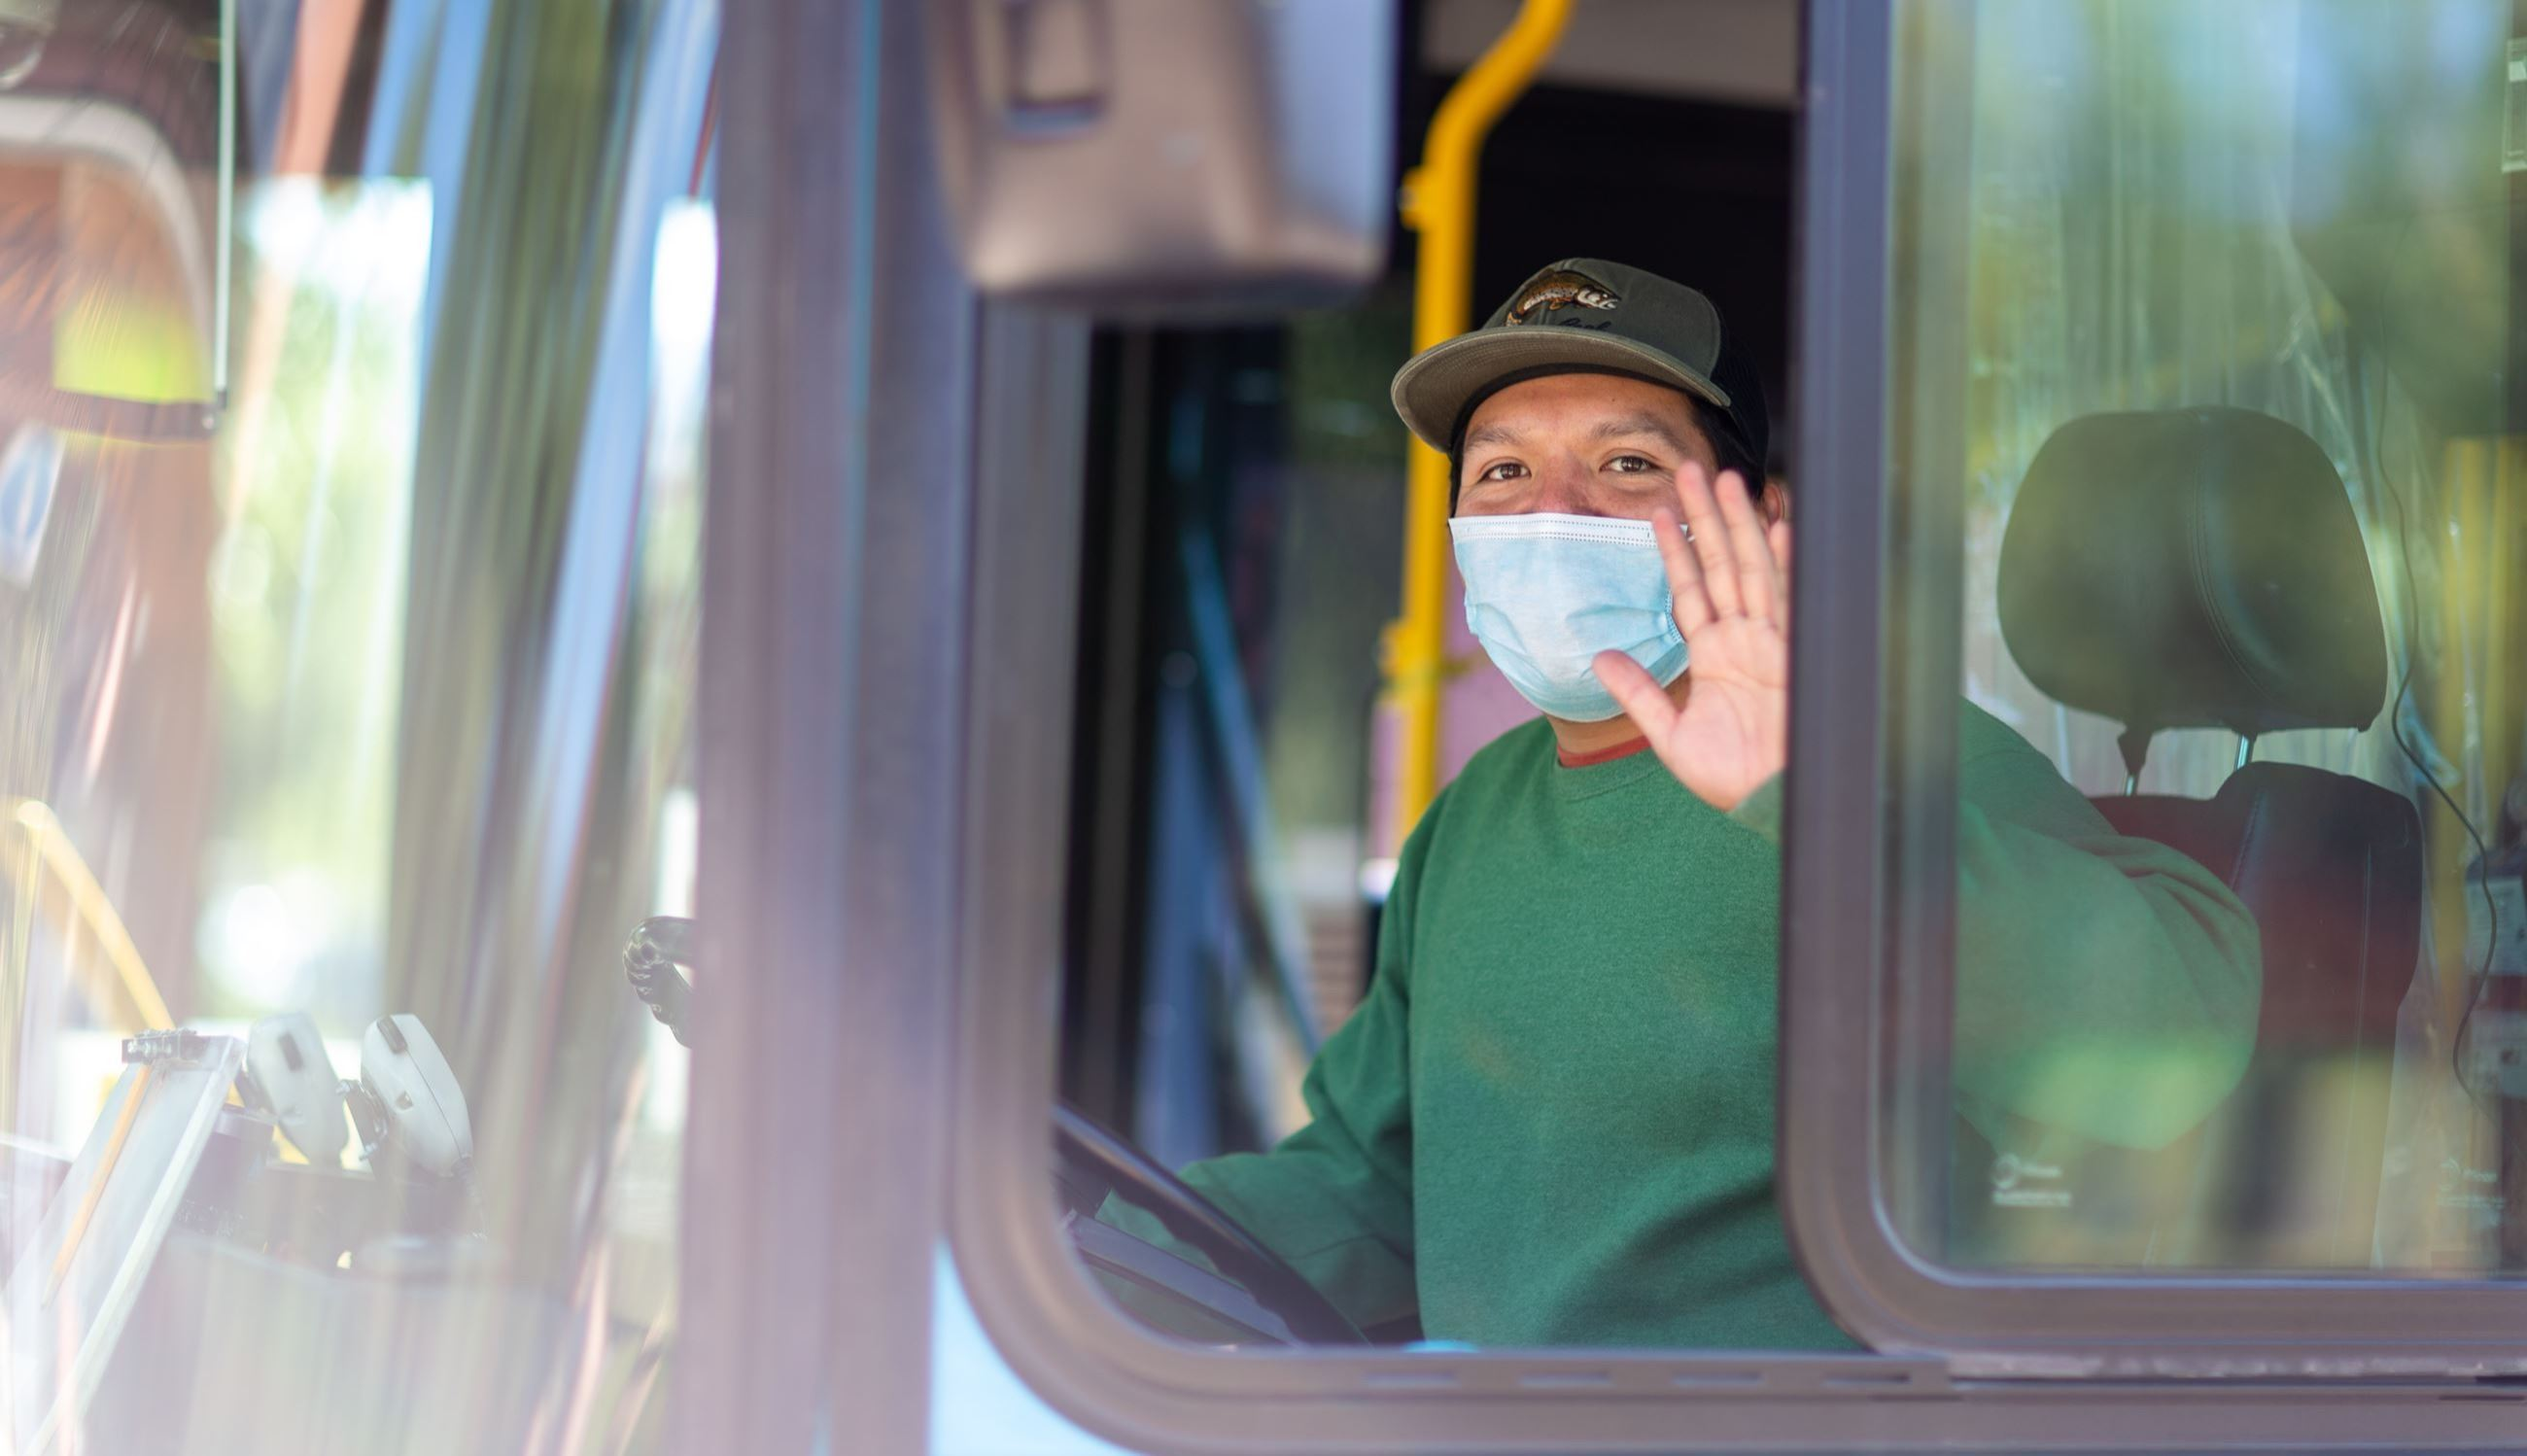 Bus driver smiling and waving in mask